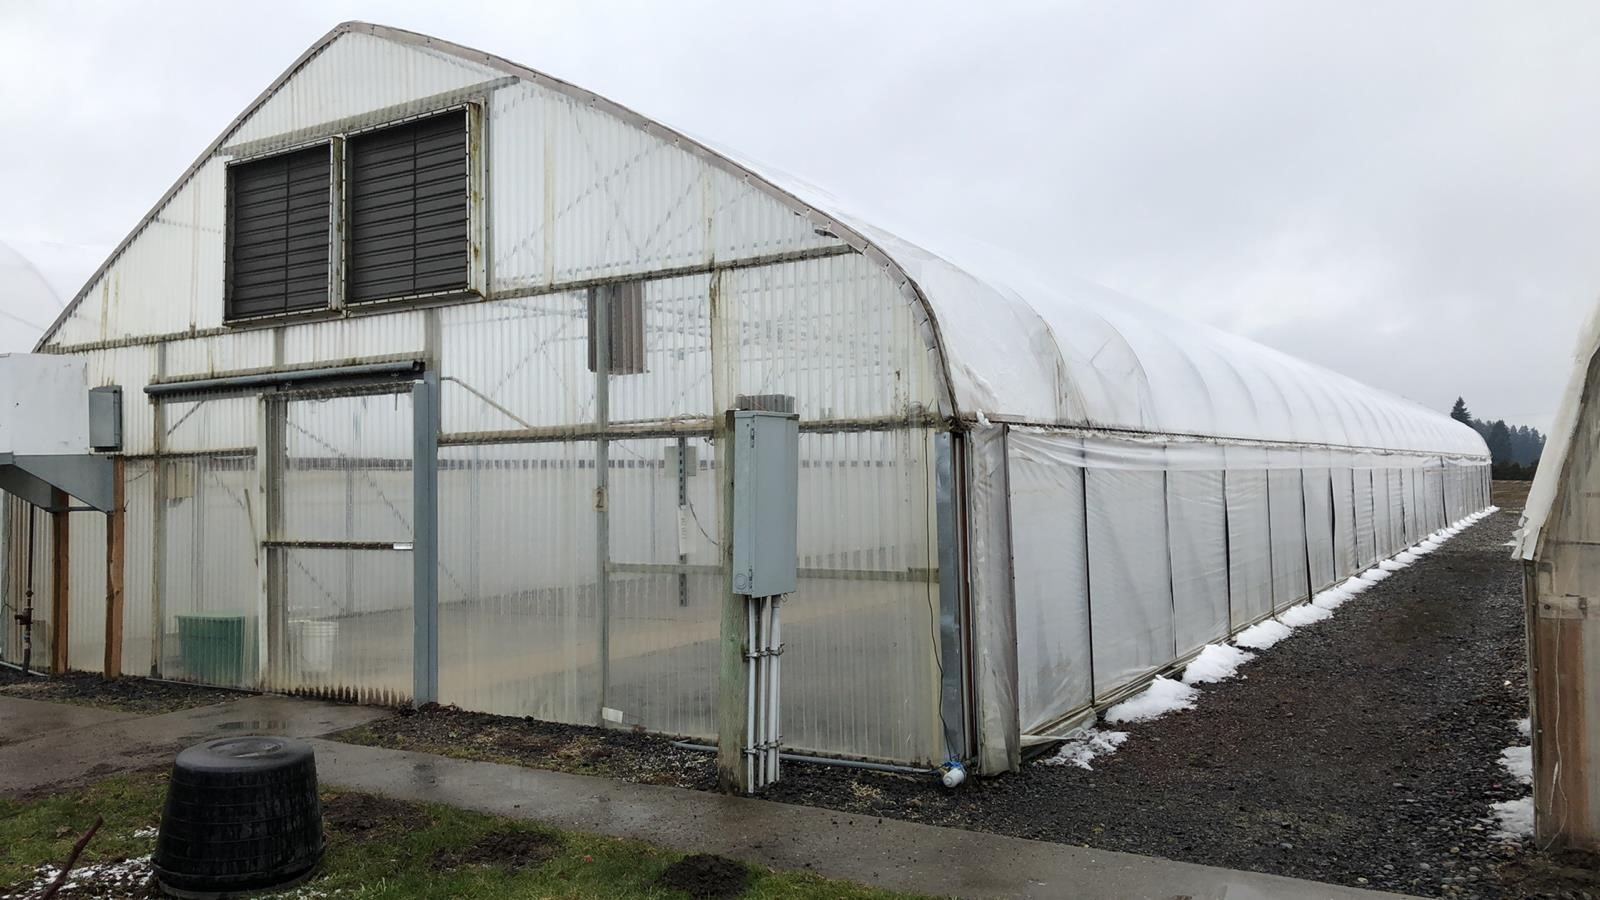 144ft x 30ft GK 5000 Greenhouse